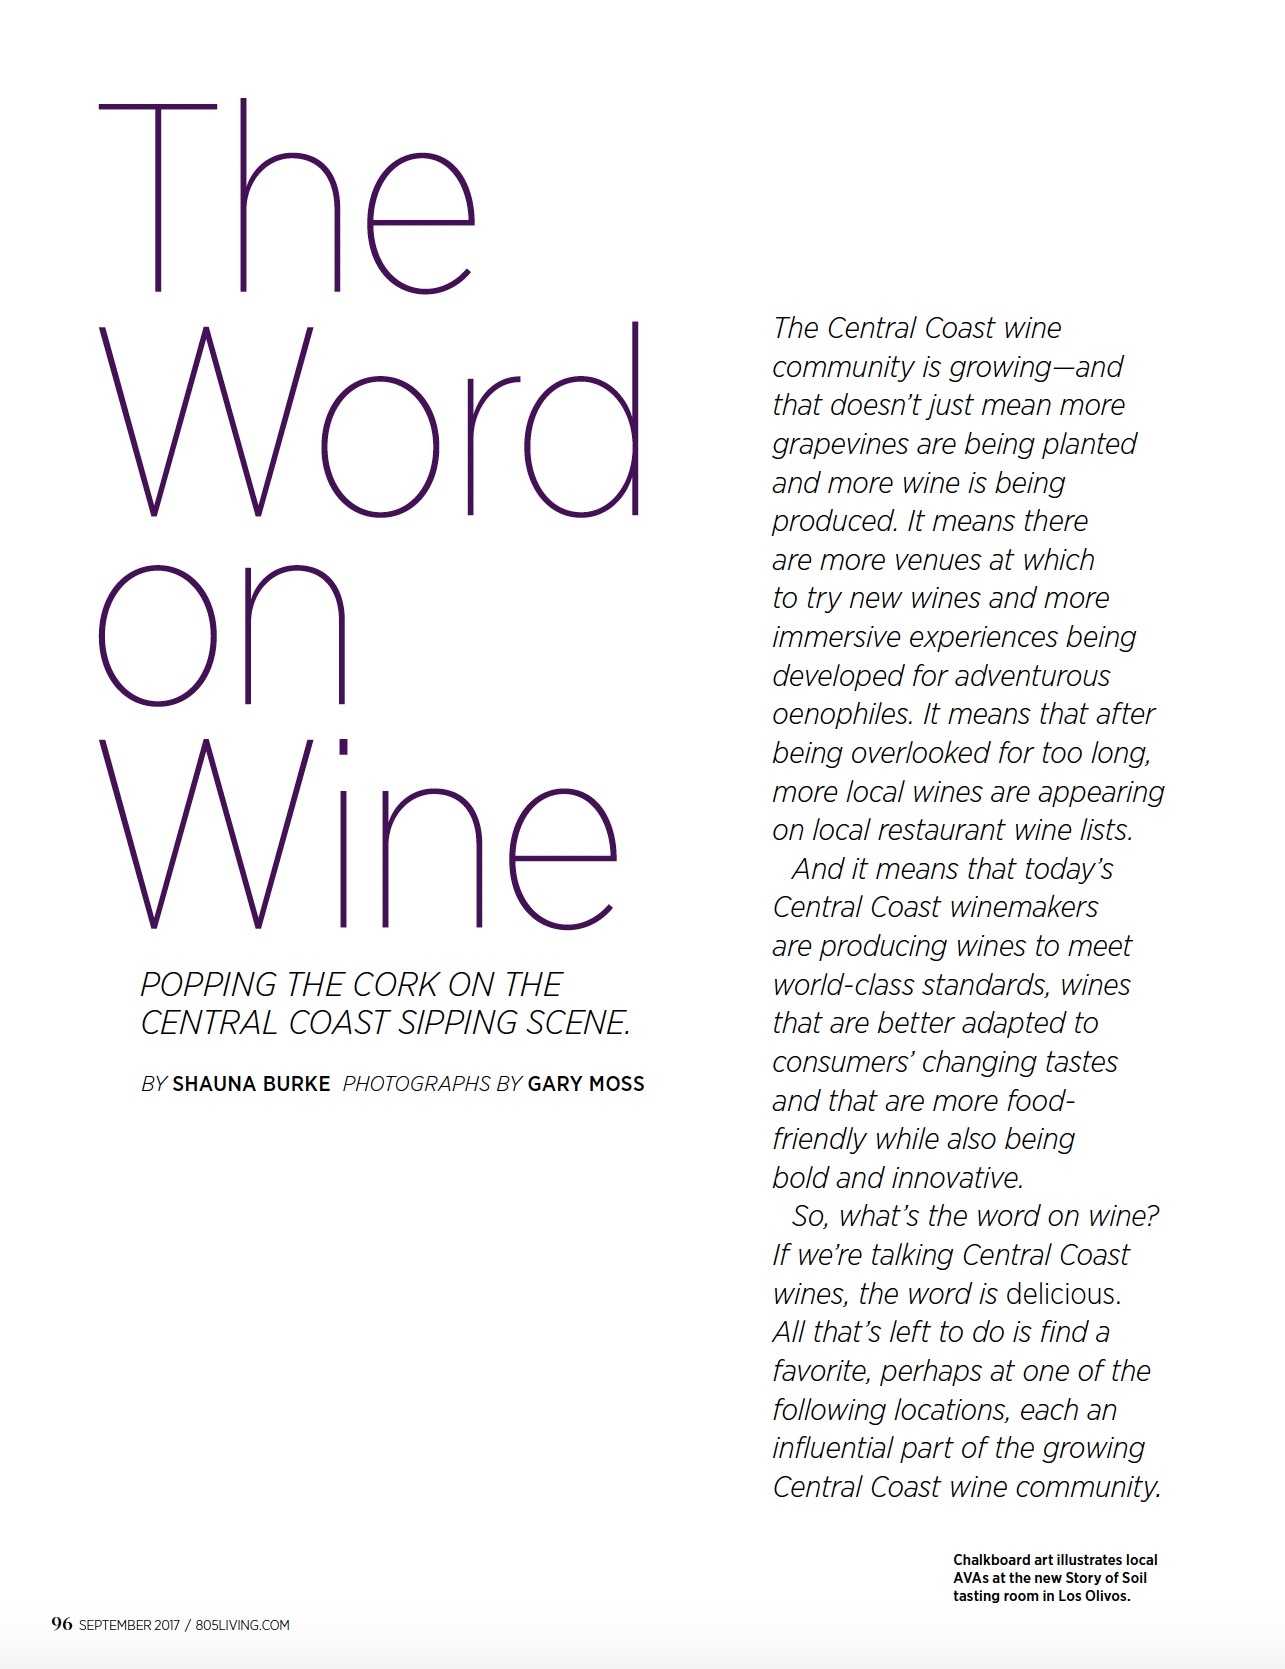 The Word on Wine / 805 Living